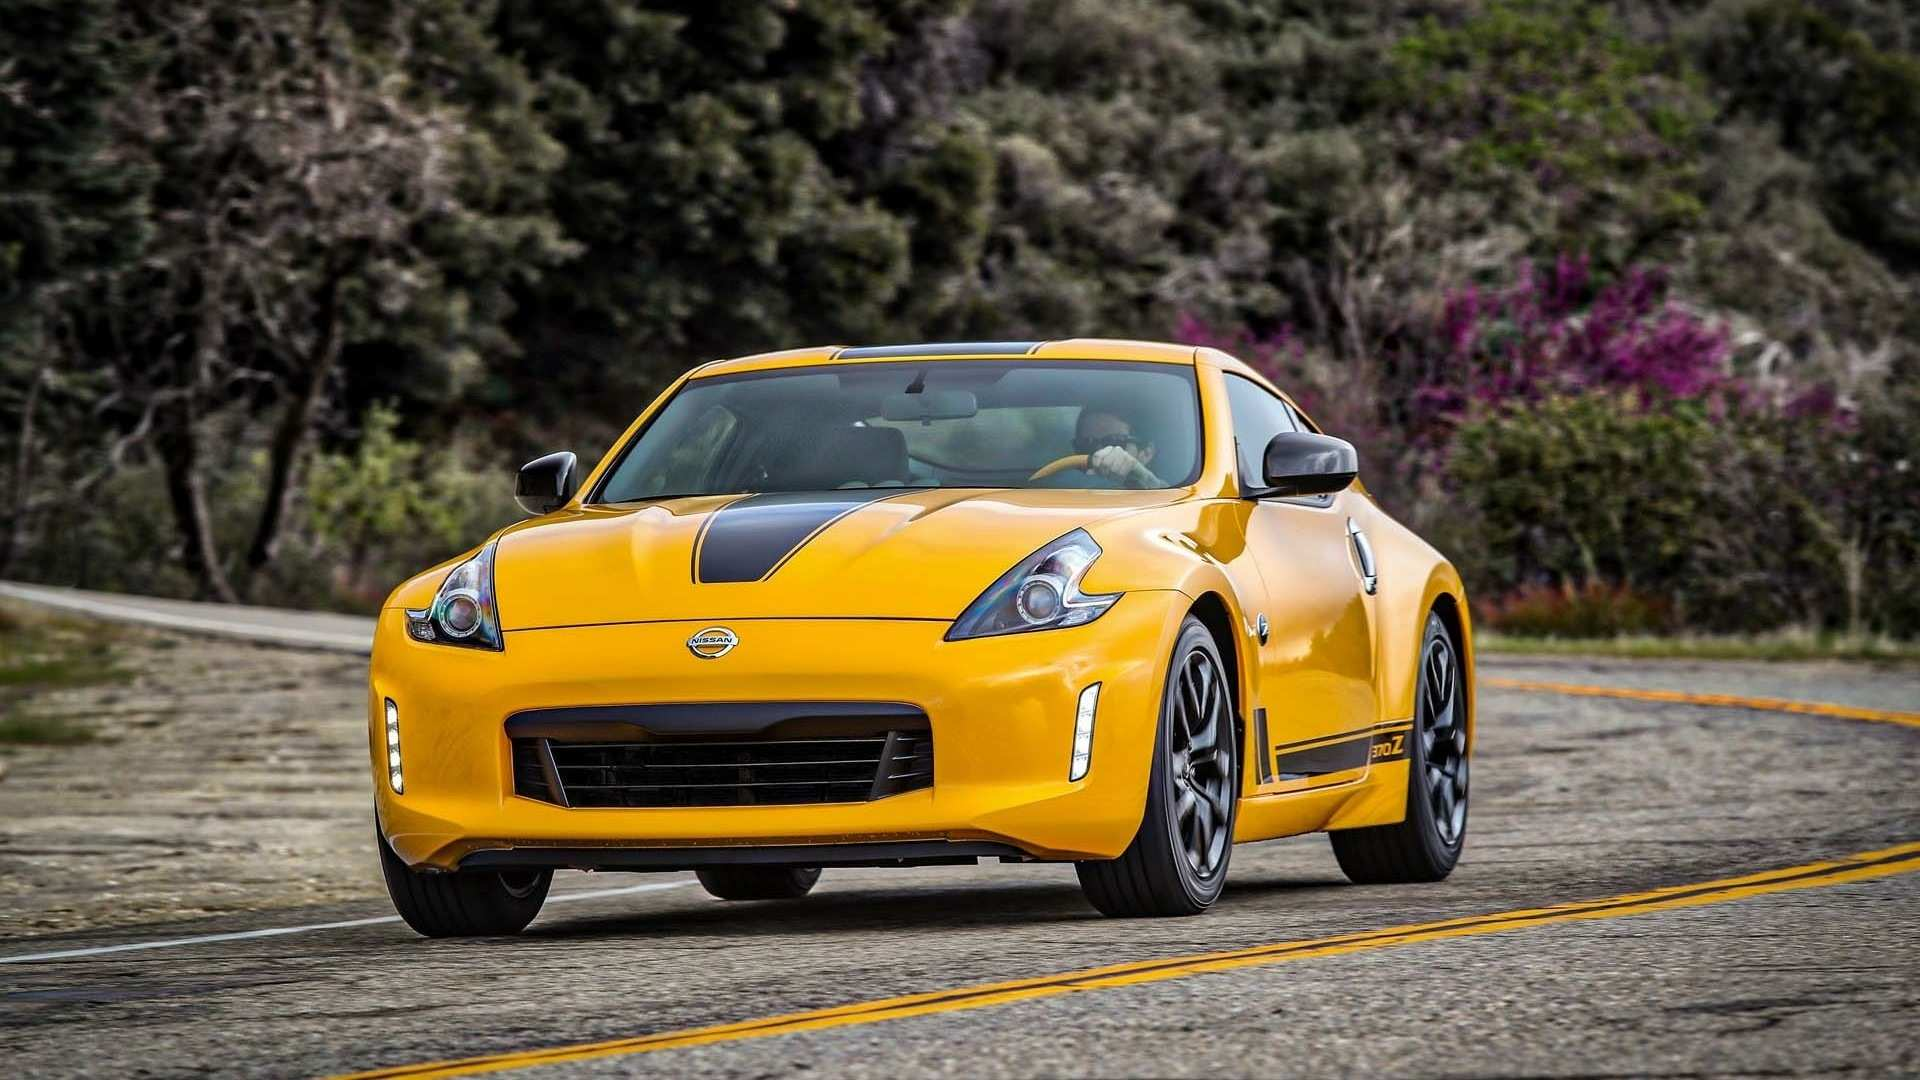 18 Best 2020 The Nissan Z35 Review Images